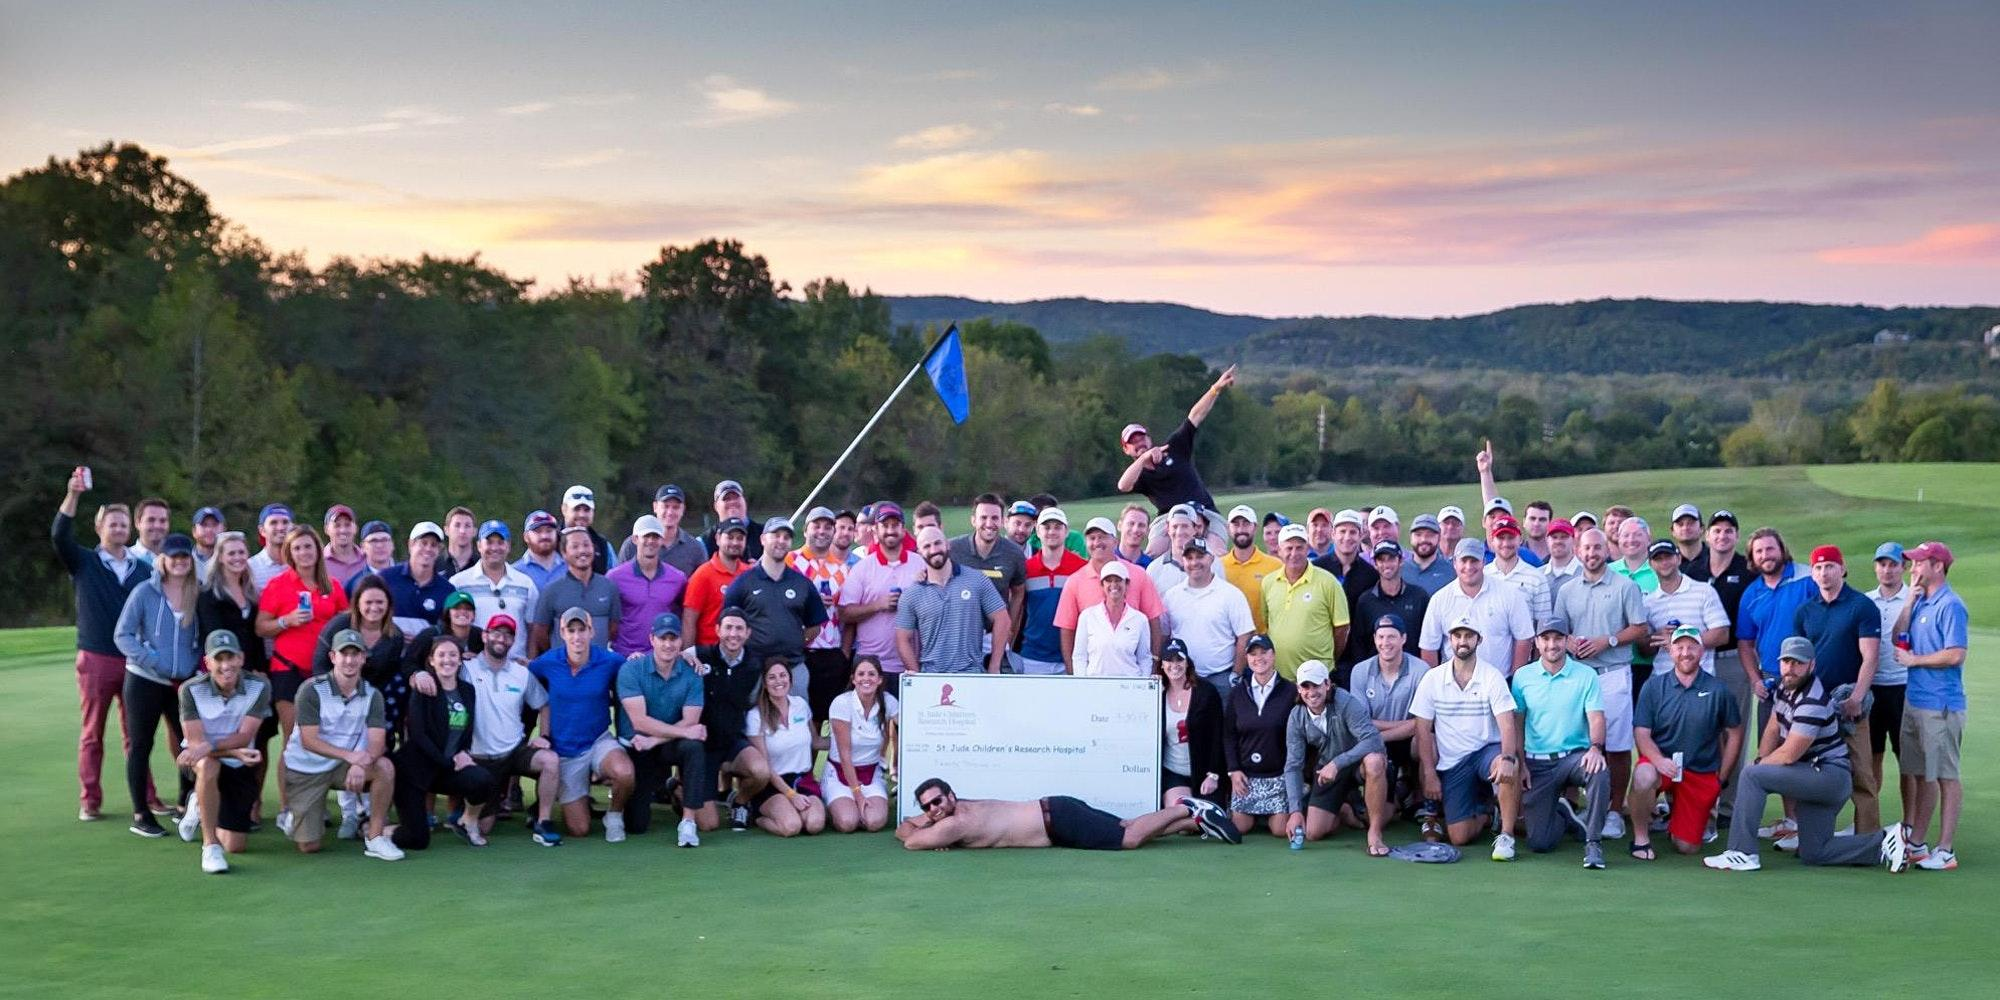 The 8th Annual Dudes Golf Tournament Benefitting St. Jude